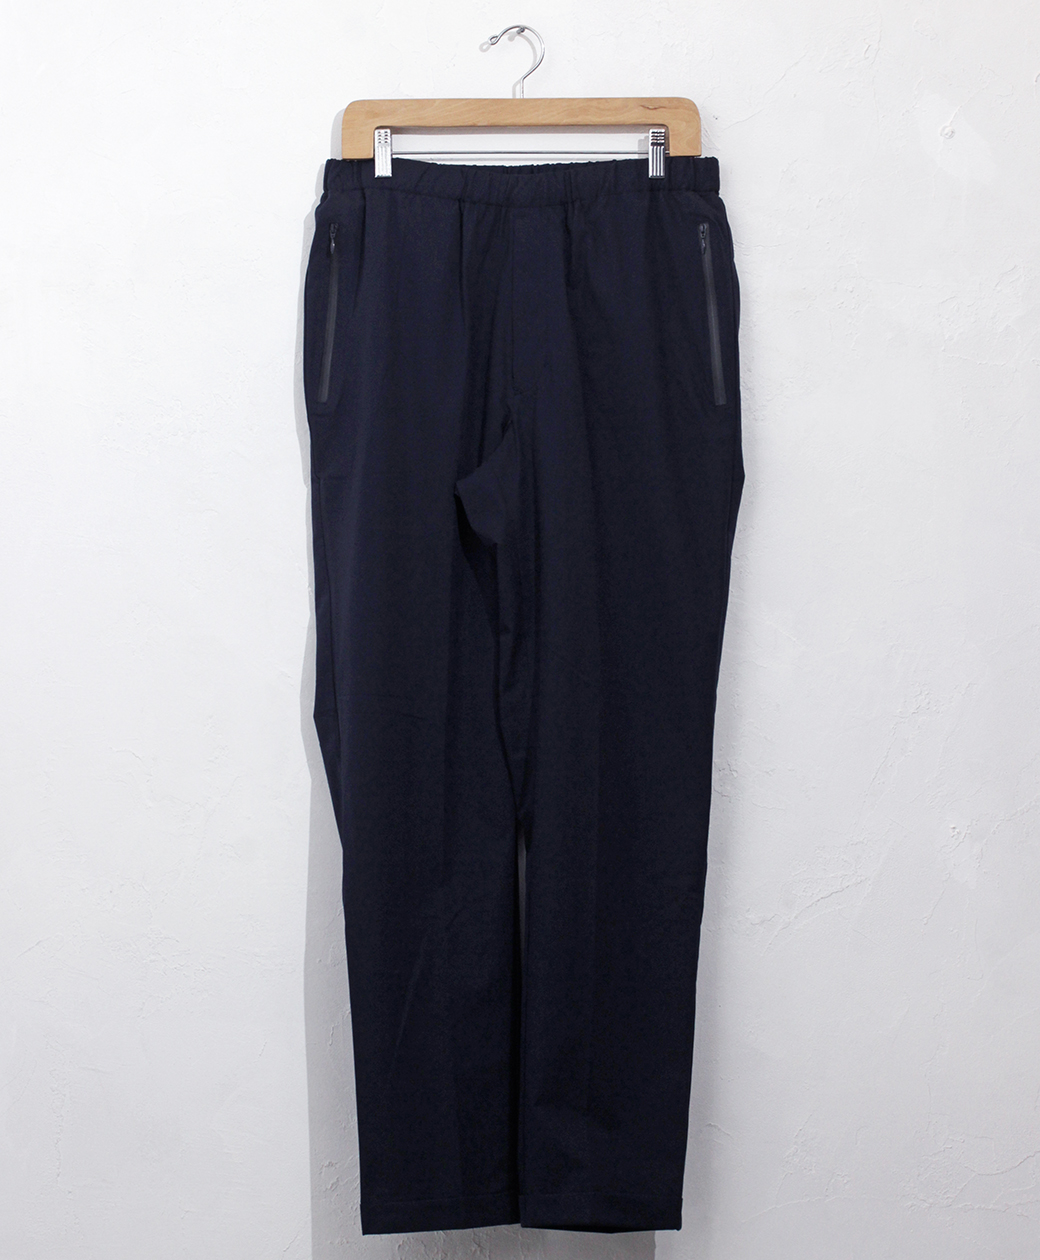 DESCENTE PACKABLE PANTS(NVY)